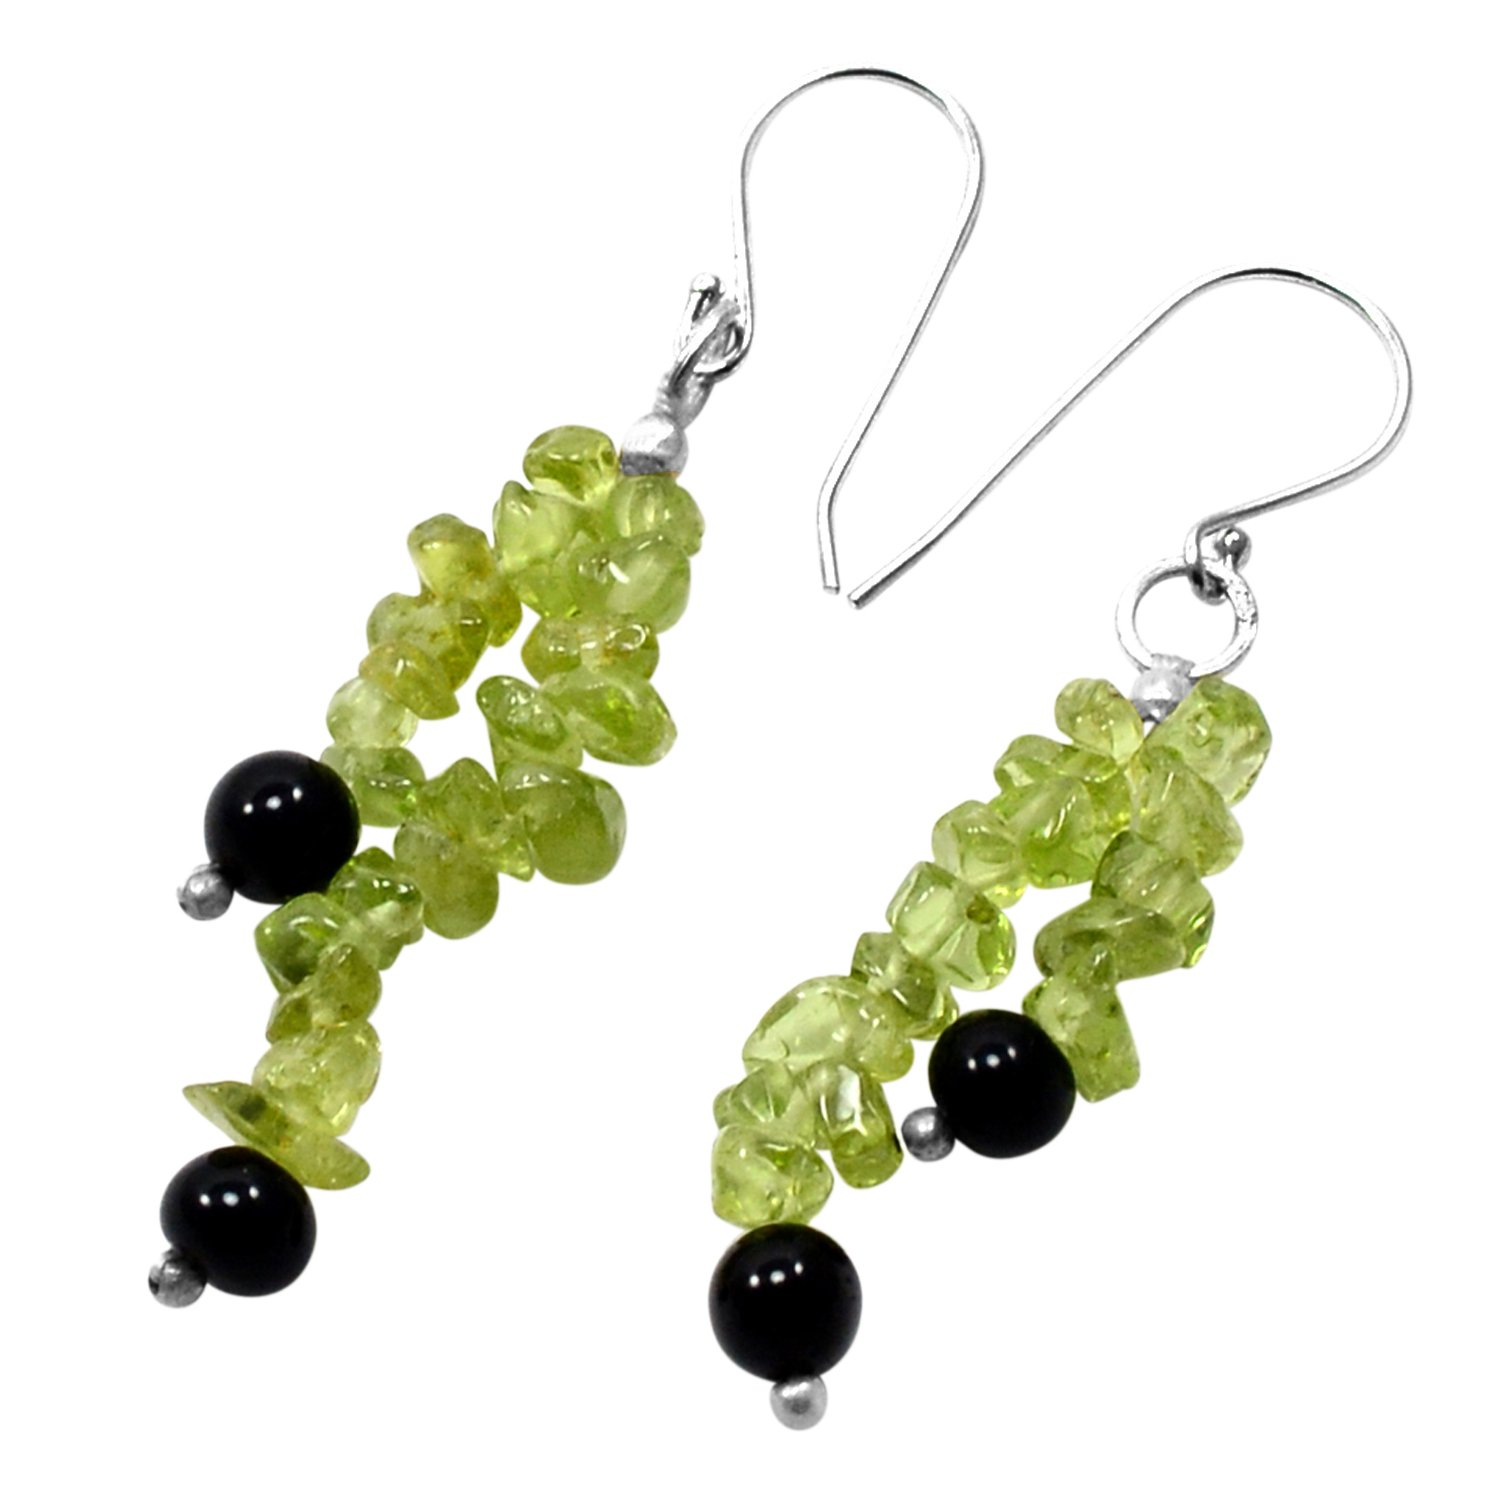 Handmade Jewelry Manufacturer Round Bead Black Onyx 925 Sterling Silver 2-Layer Earring Jaipur Rajasthan India Chips Peridot